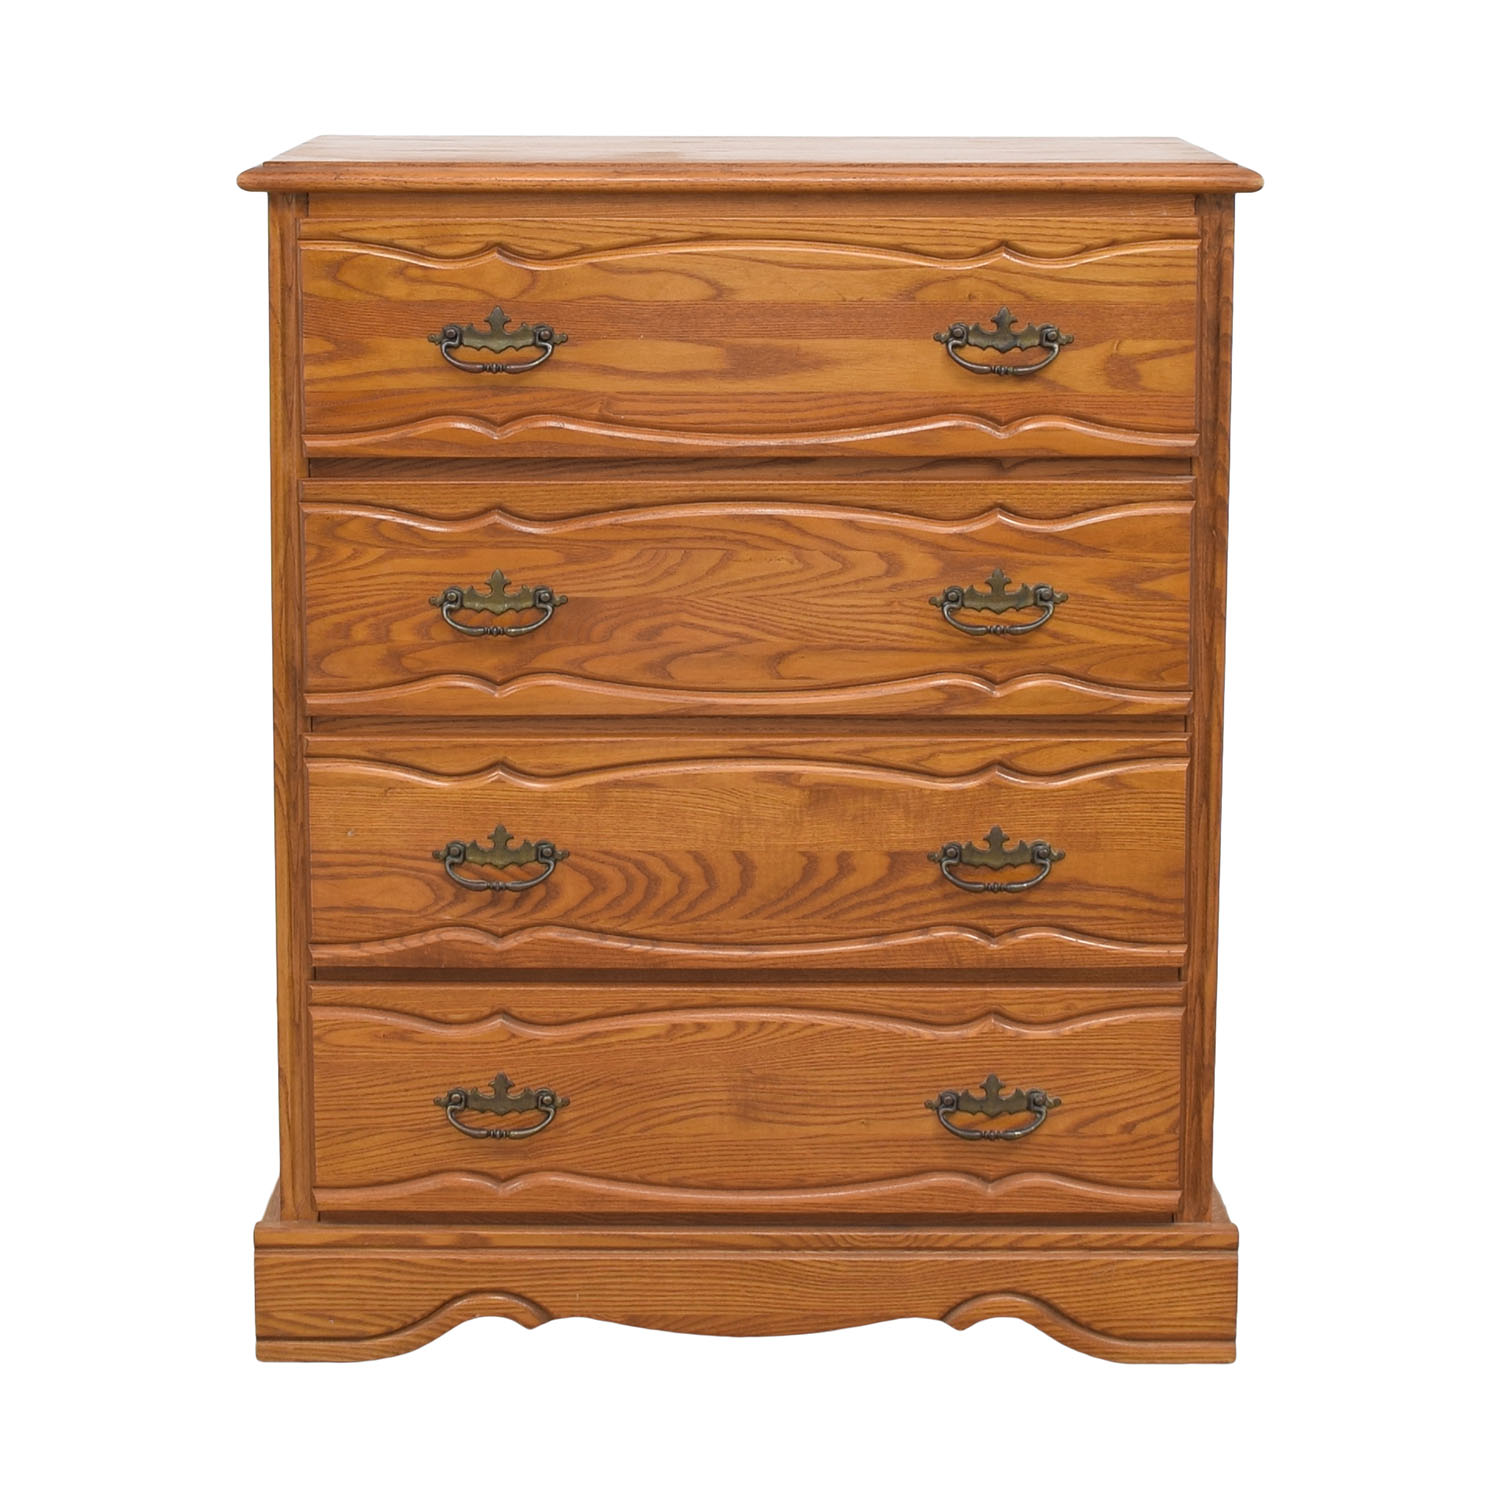 Childcraft Childcraft Classic Four Drawer Dresser nyc